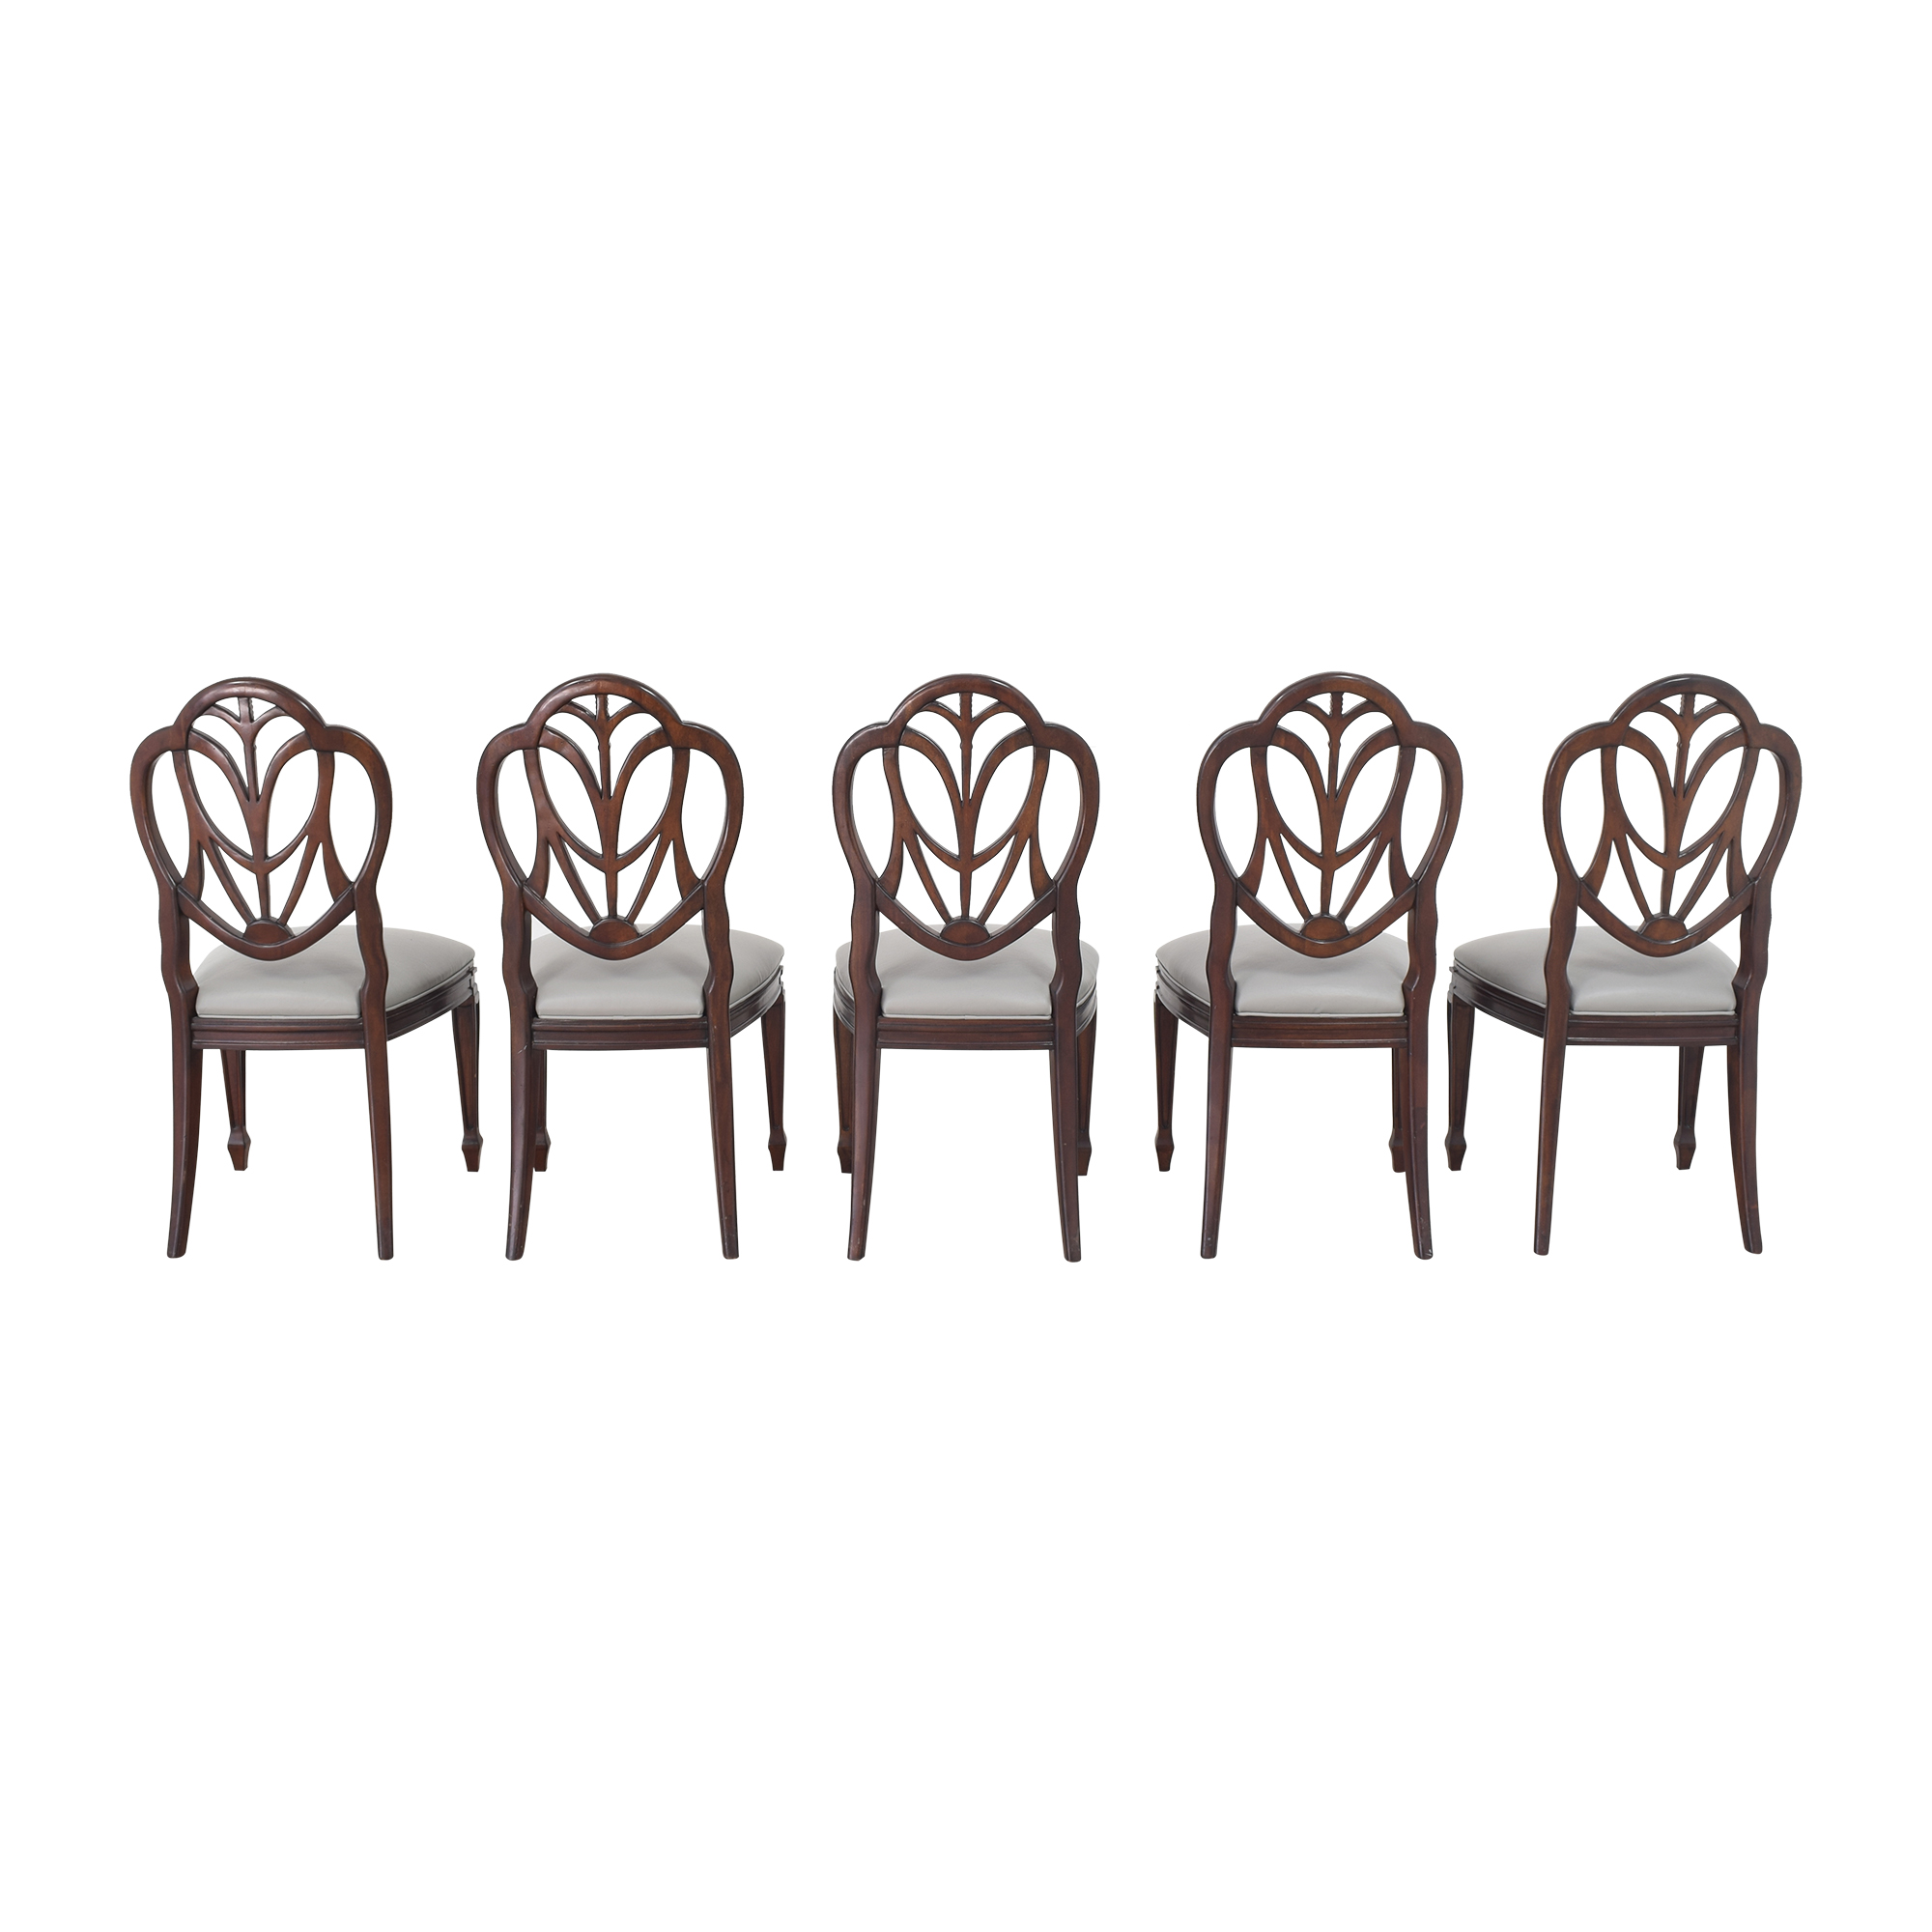 Drexel Heritage Drexel Heritage British Accents Dining Chairs pa